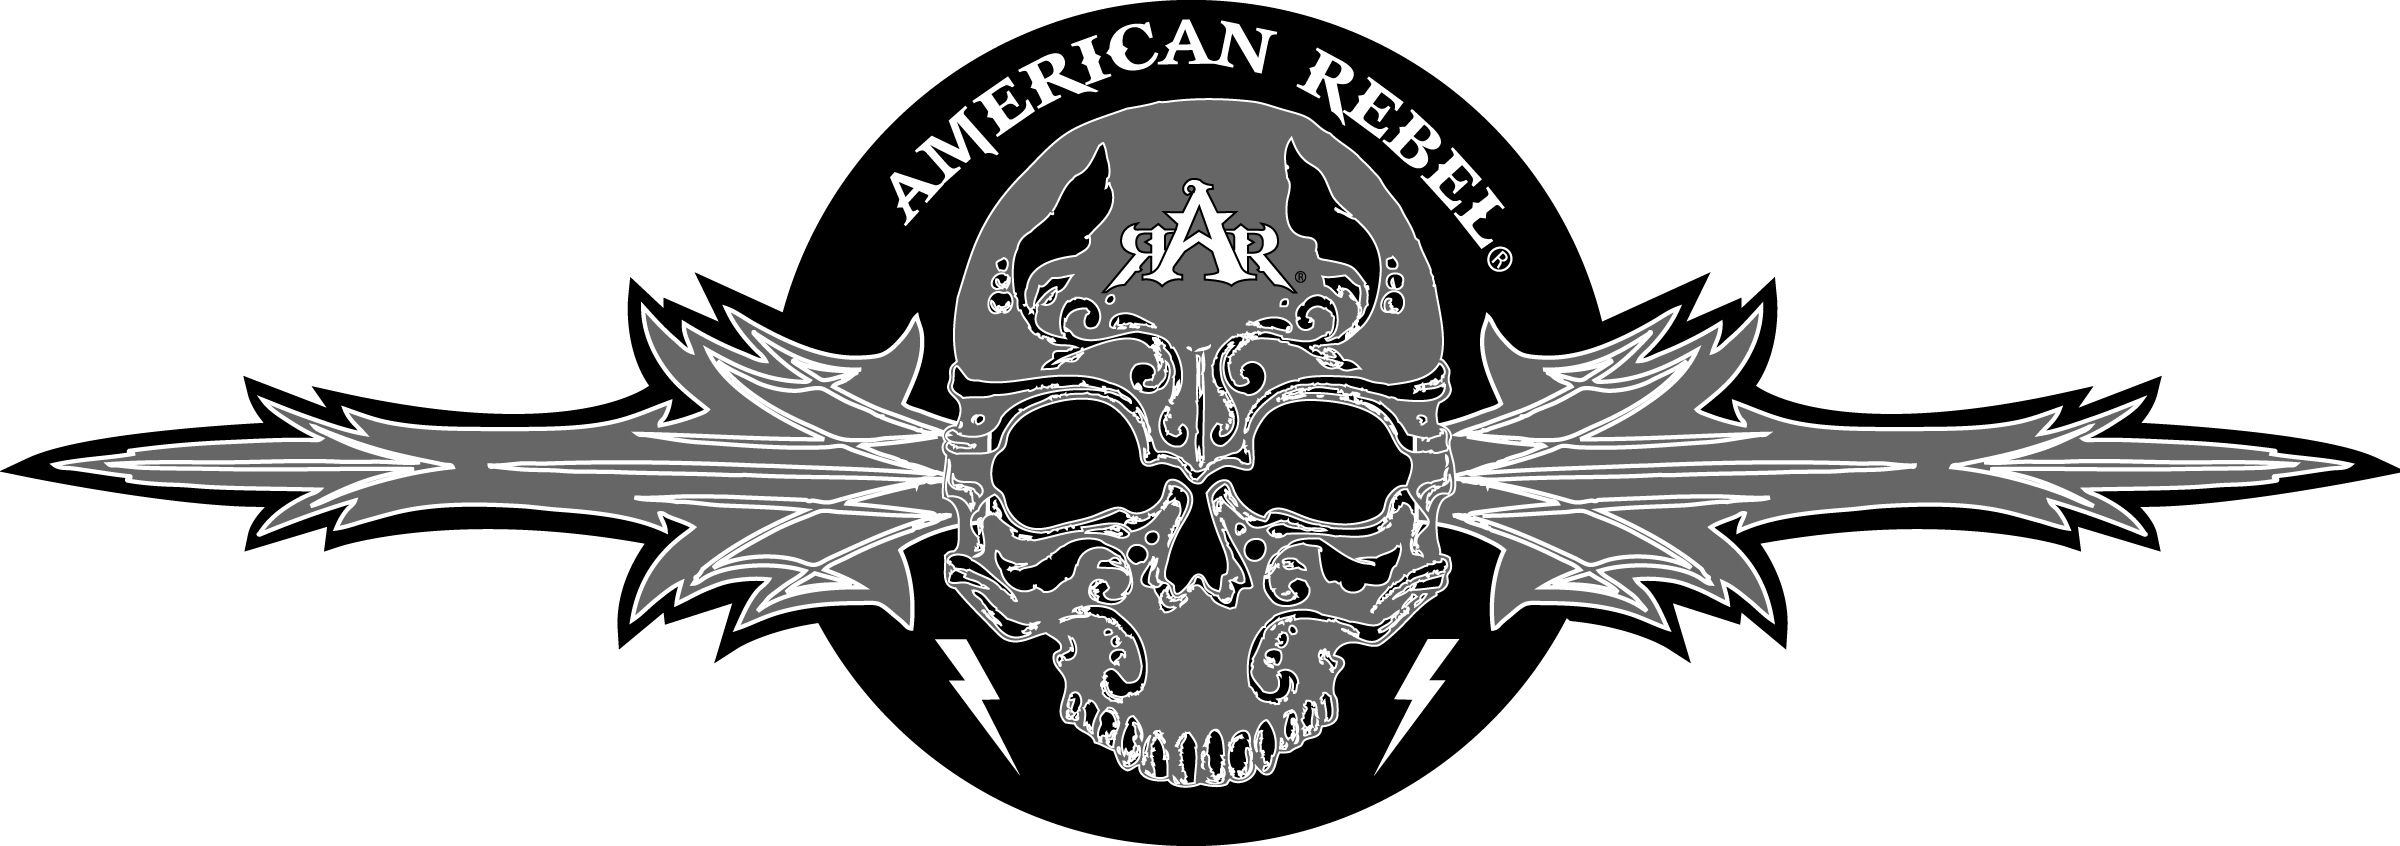 9inch bumper #sticker #decal car,truck or windshield #skull #motorcycle #